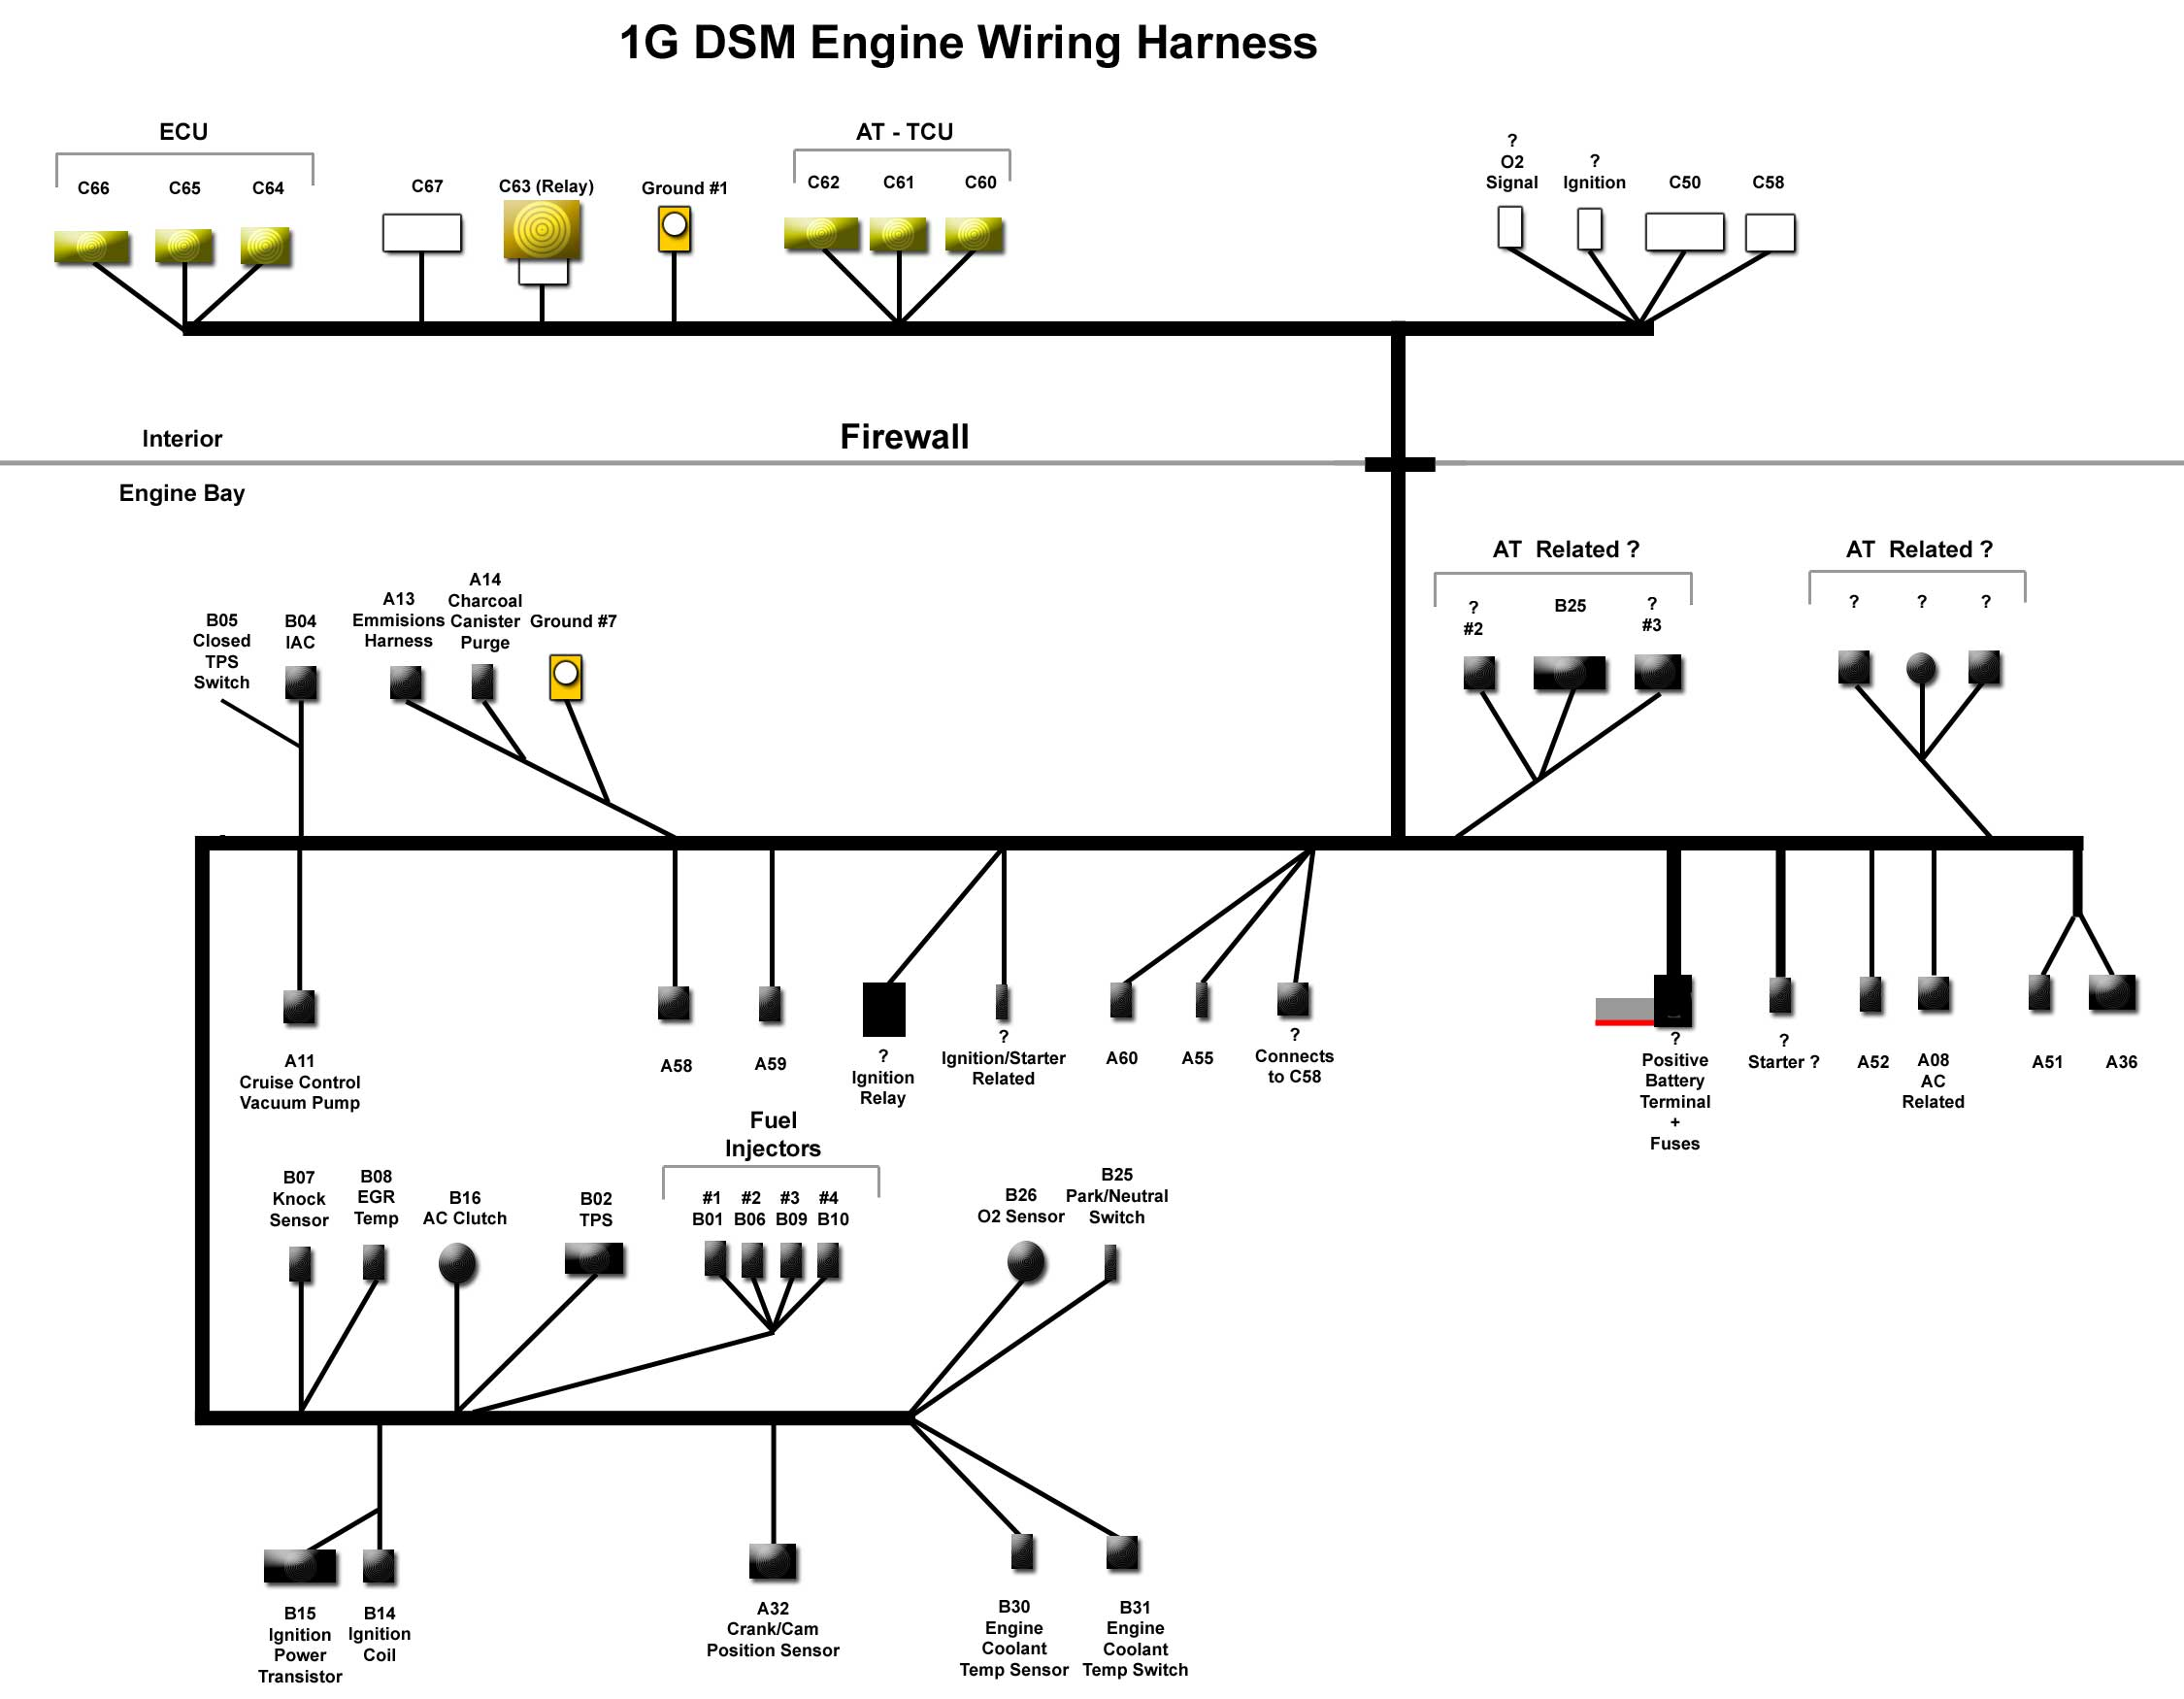 1G DSM EngineHarness wiring harness diagram jeep liberty wiring harness diagram what is an engine wiring harness at aneh.co